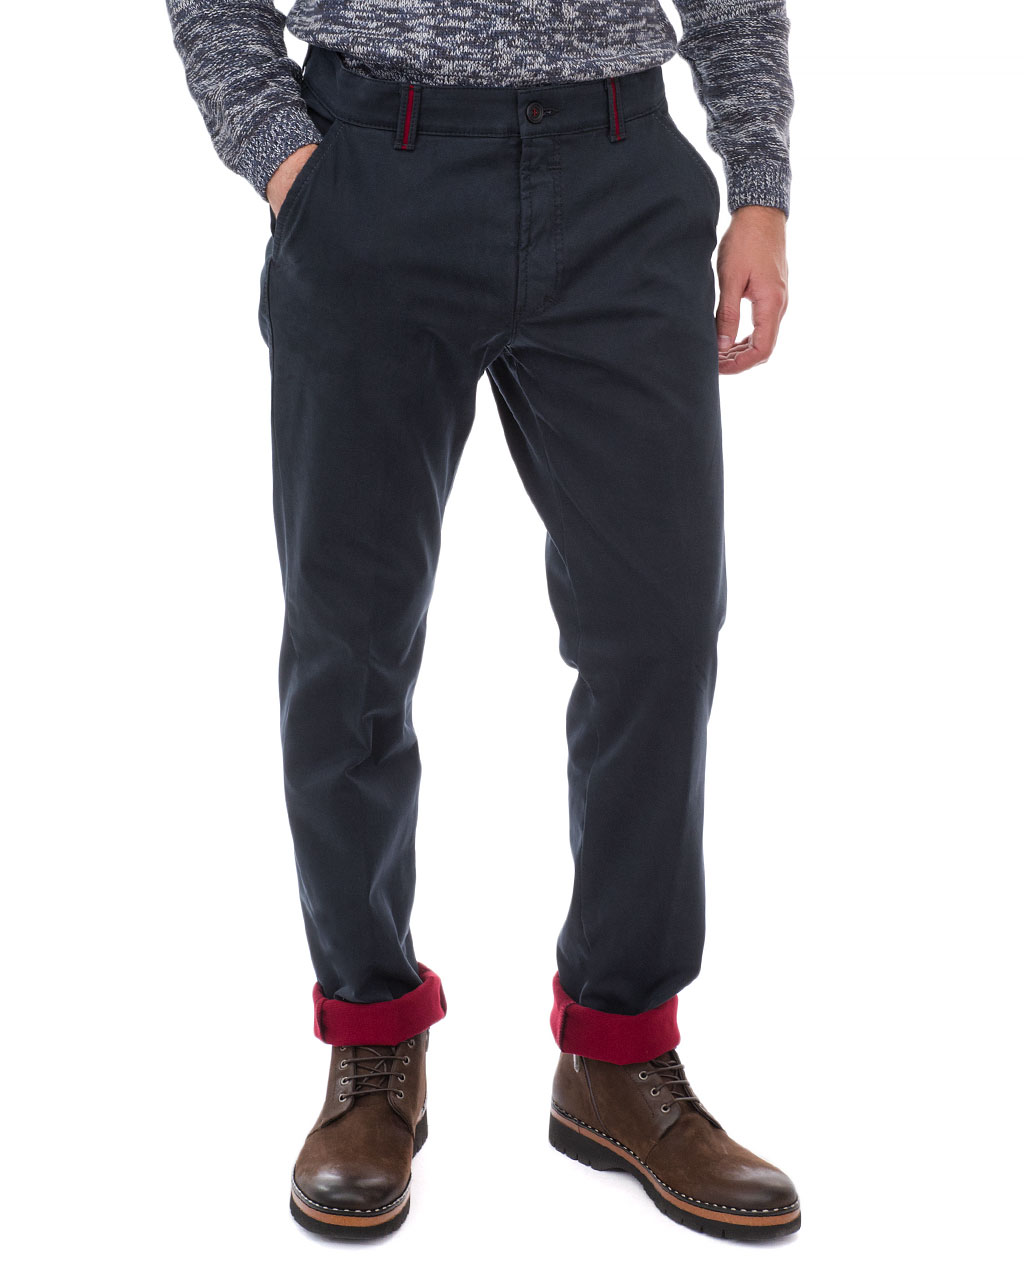 Men's trousers Carno 6826-41/19-20 (3)